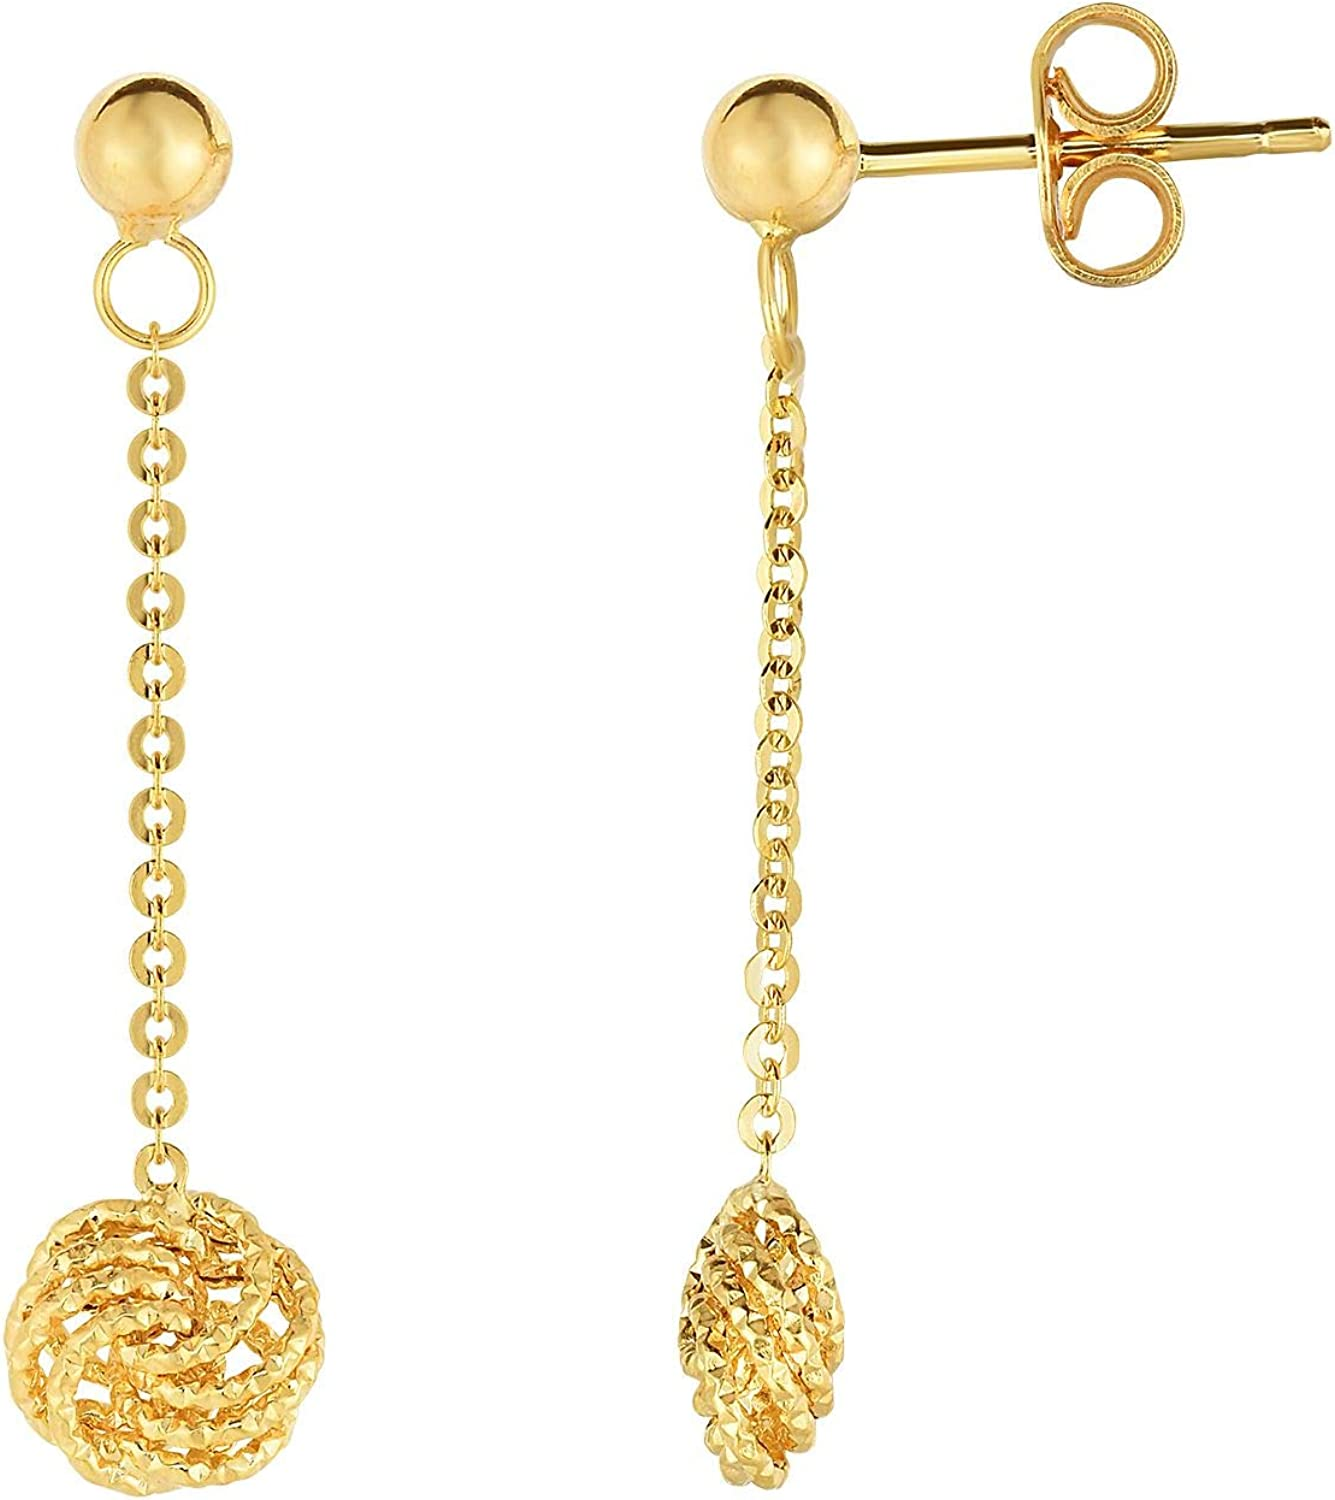 14K Yellow Gold Exquisite Earrings by IcedTime